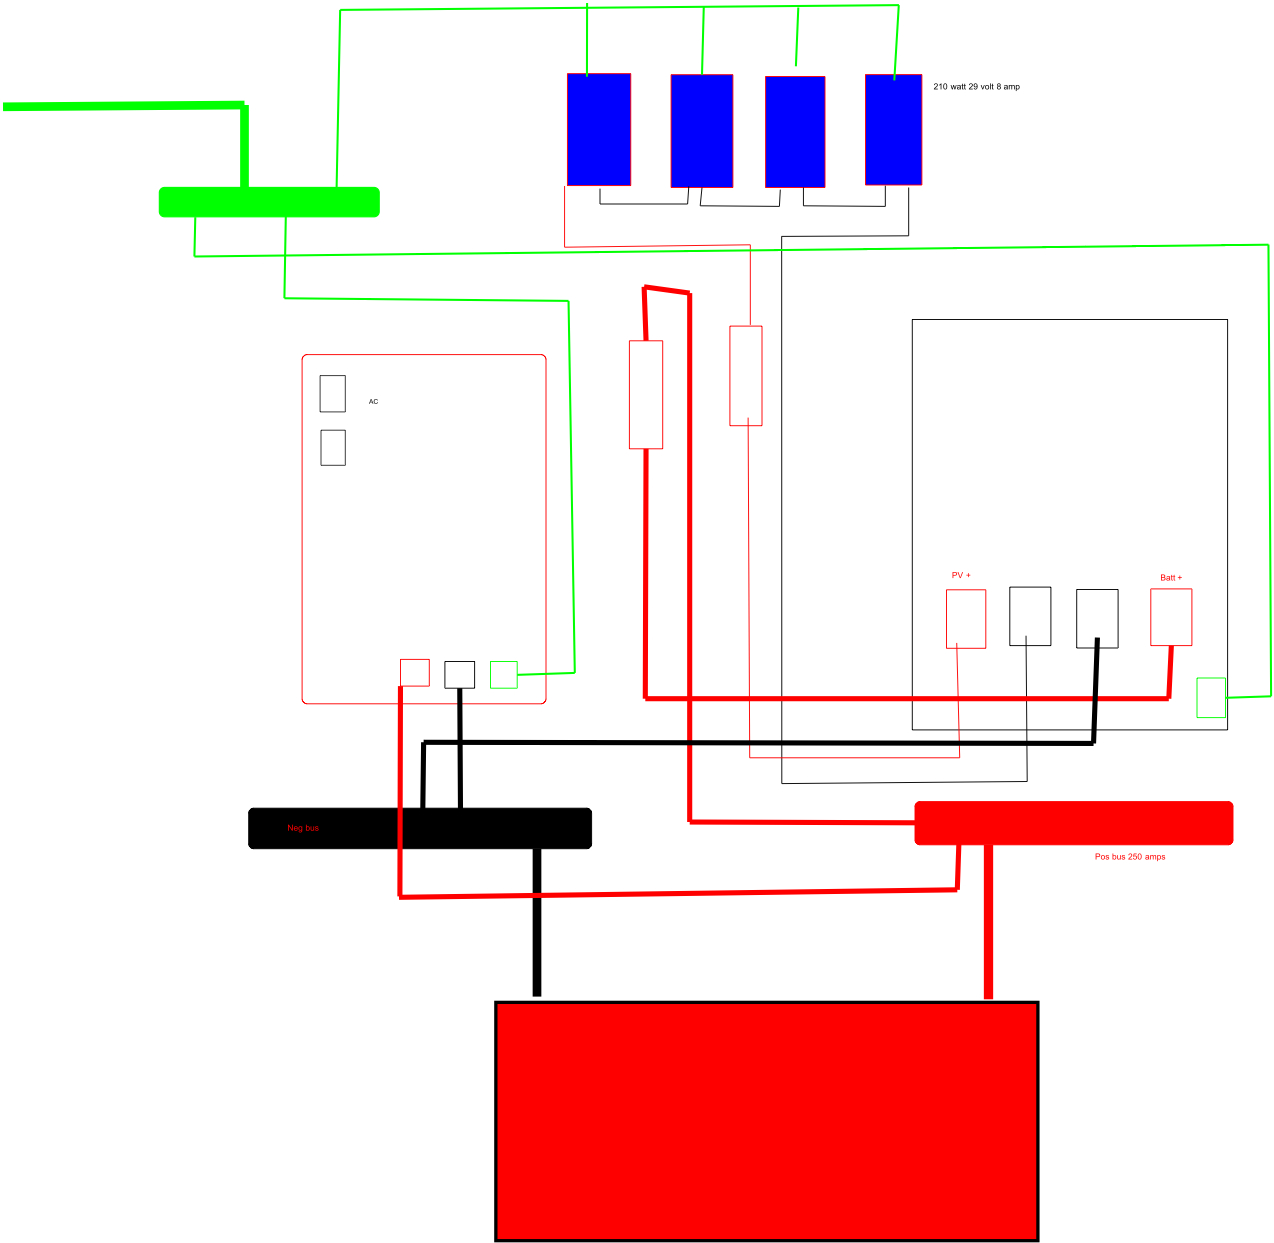 medium resolution of carmate trailer wiring diagram wiring diagram libraries 2013 carmate 100 solar heated and cooled over